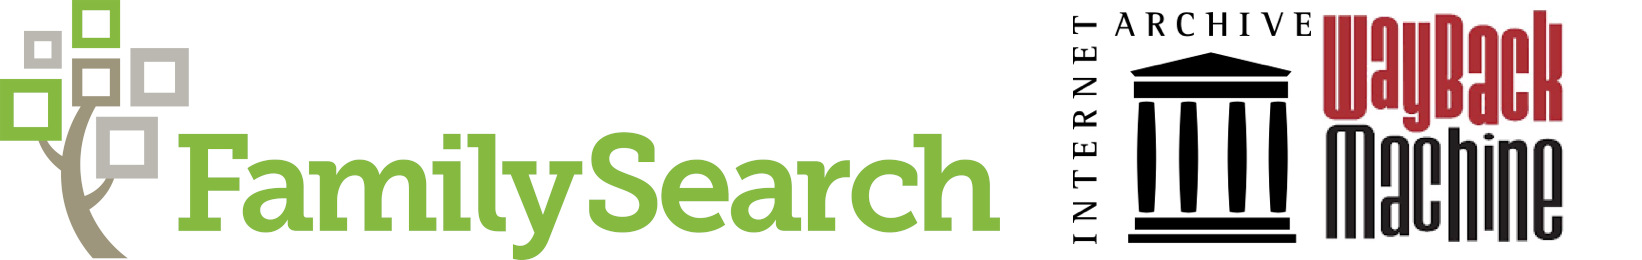 Family Search and Internet Archive logos